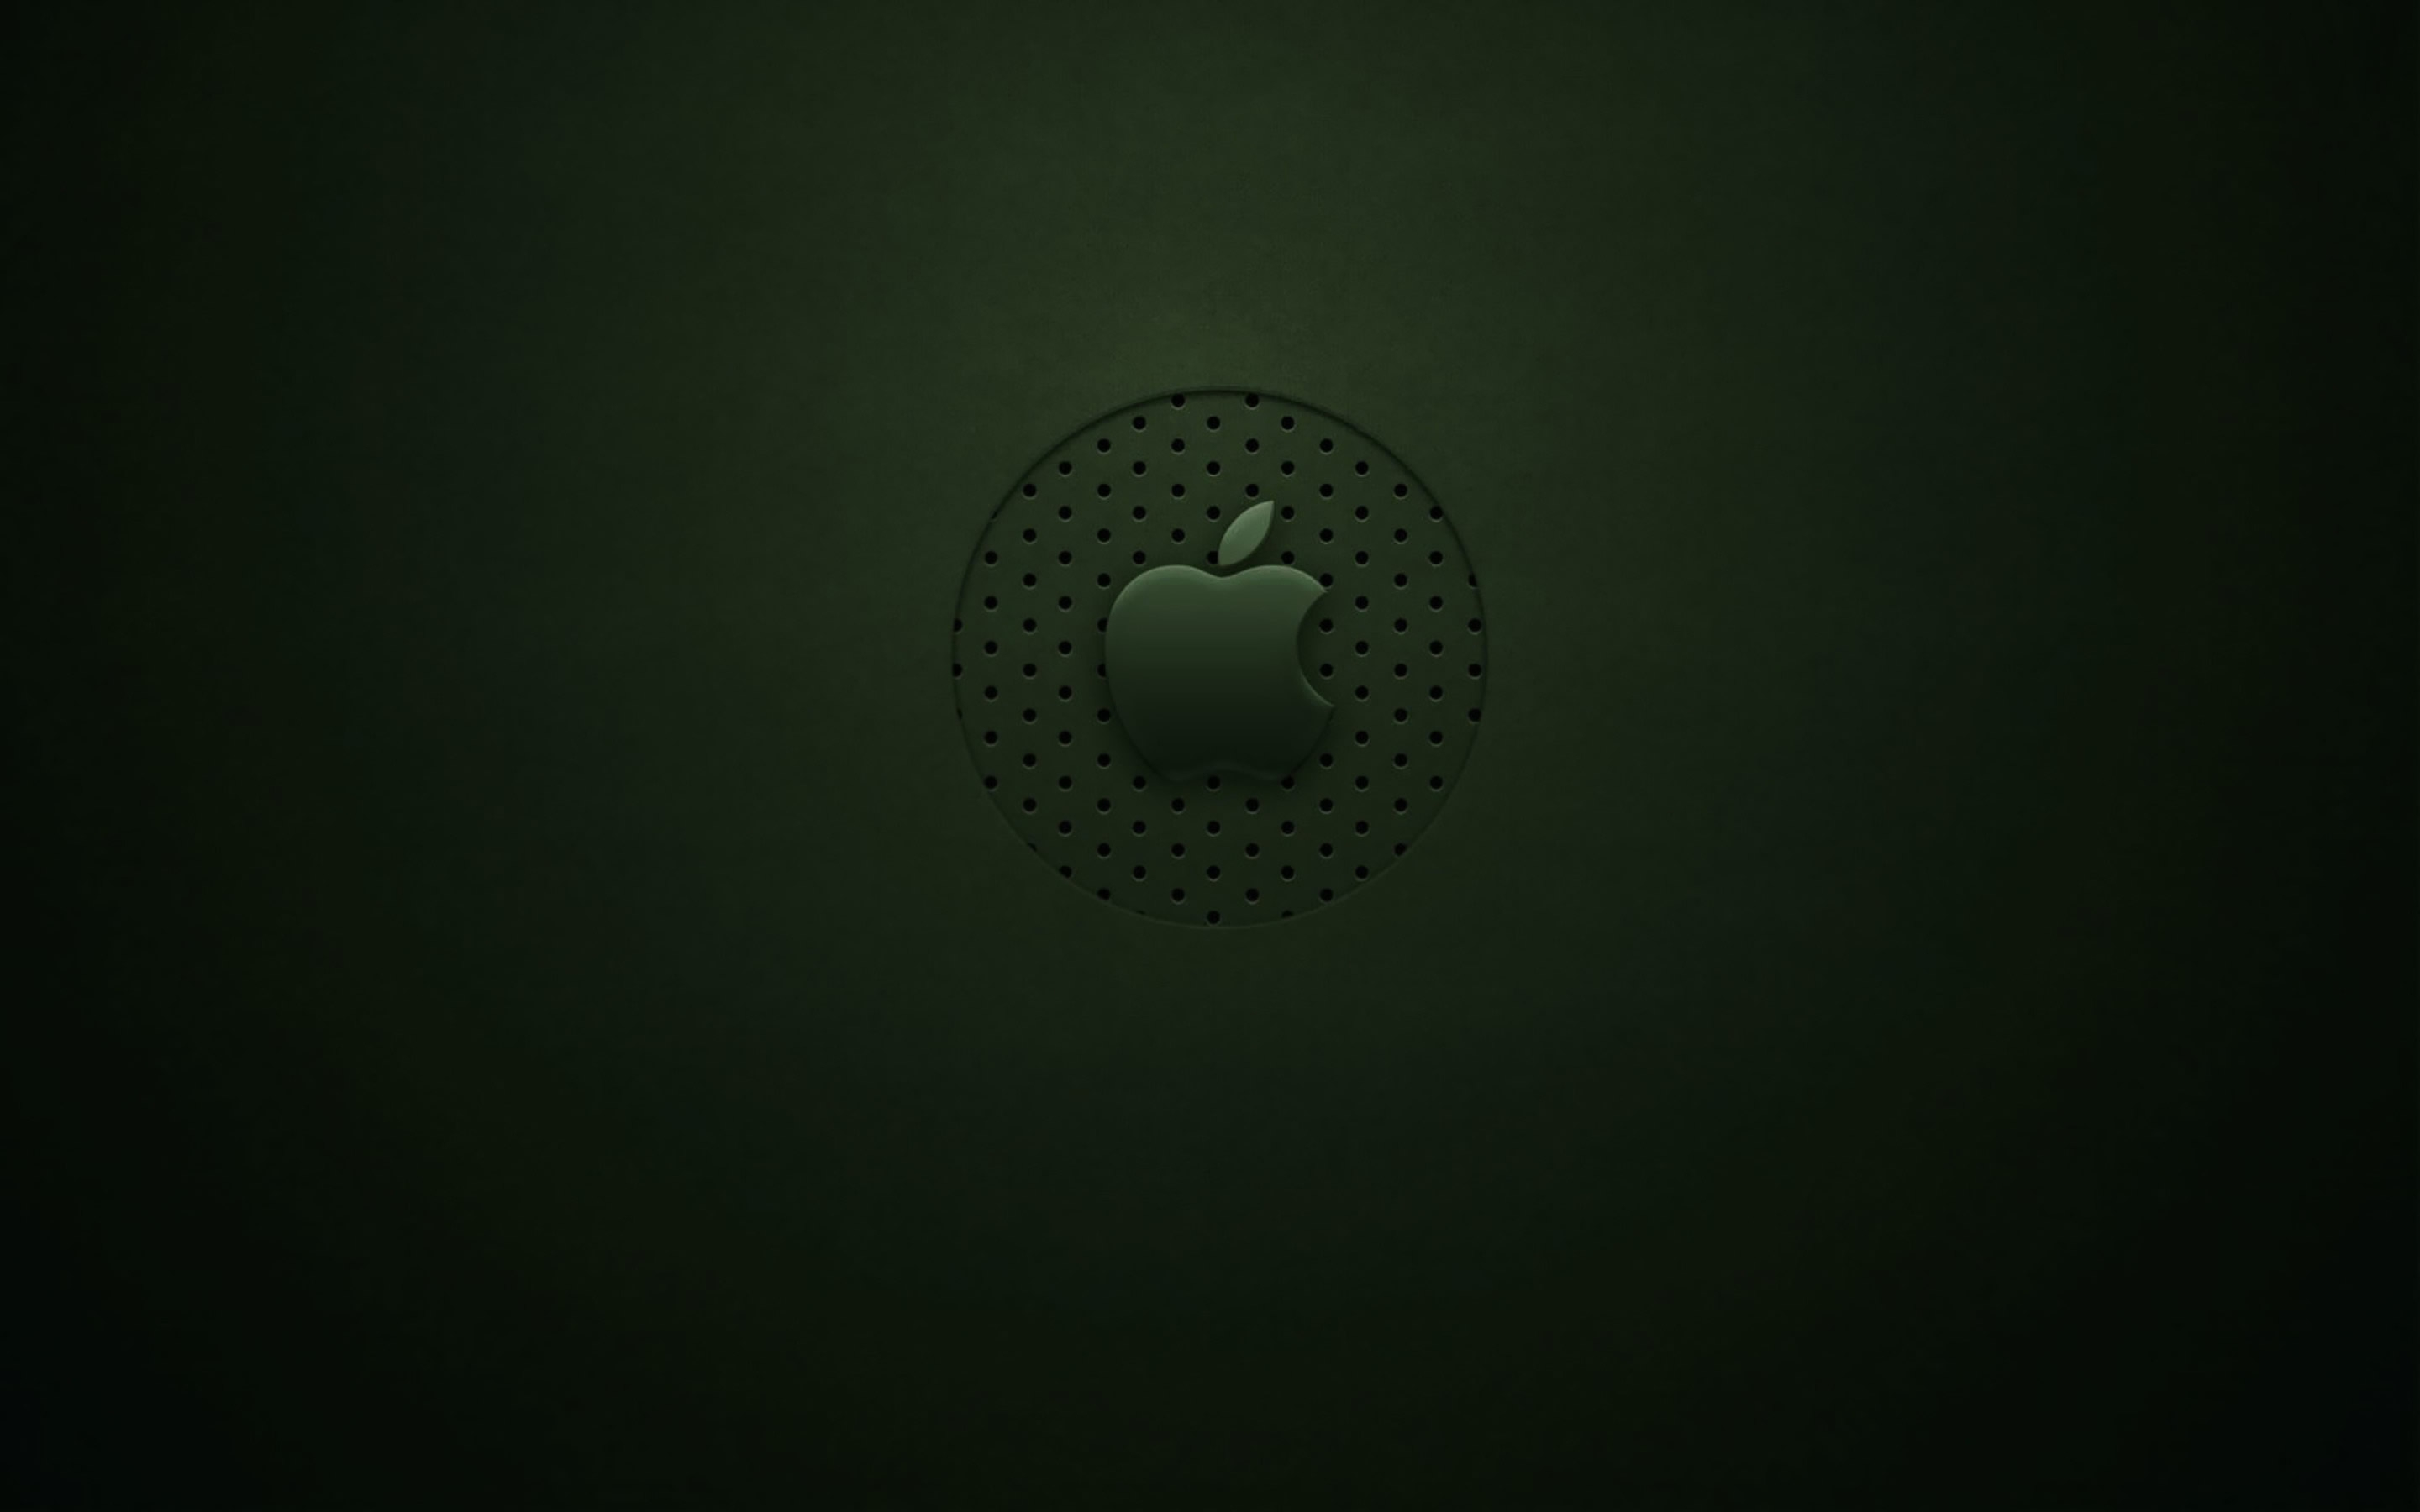 mac wallpaper logo apple macbook wallpapers 1104033